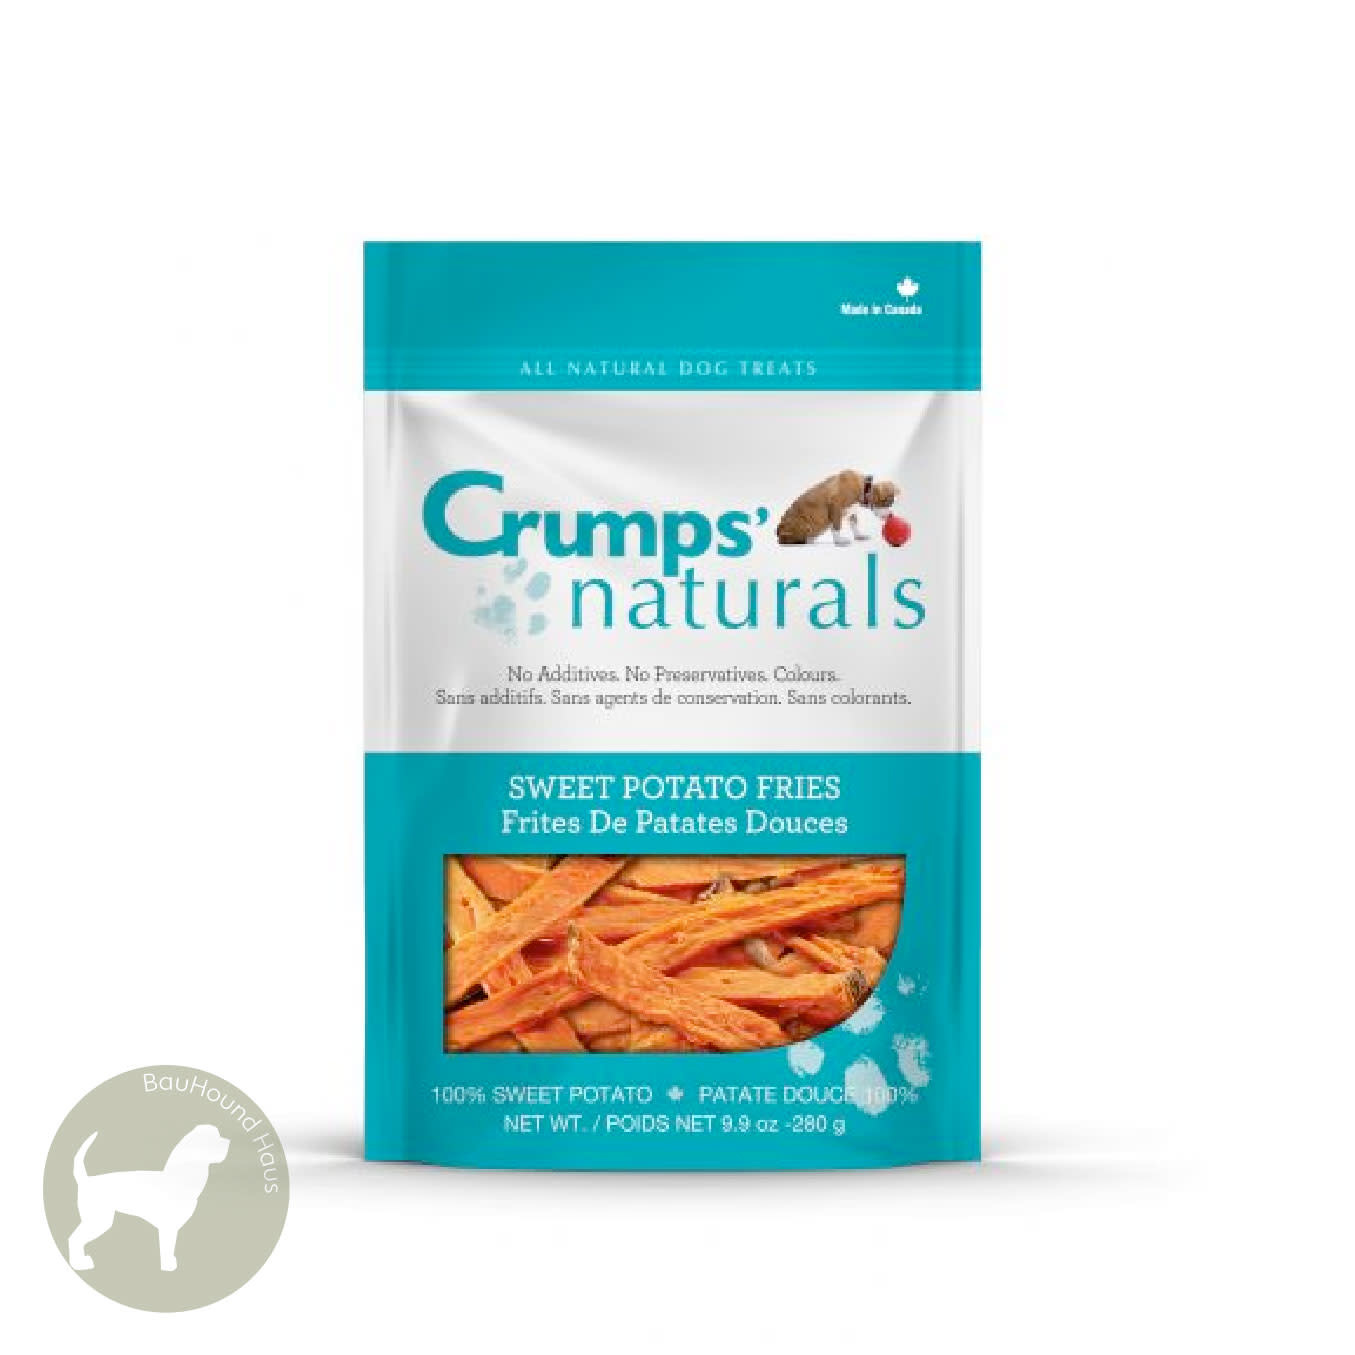 Crumps Crumps Natural Sweet Potato Fries, 280g